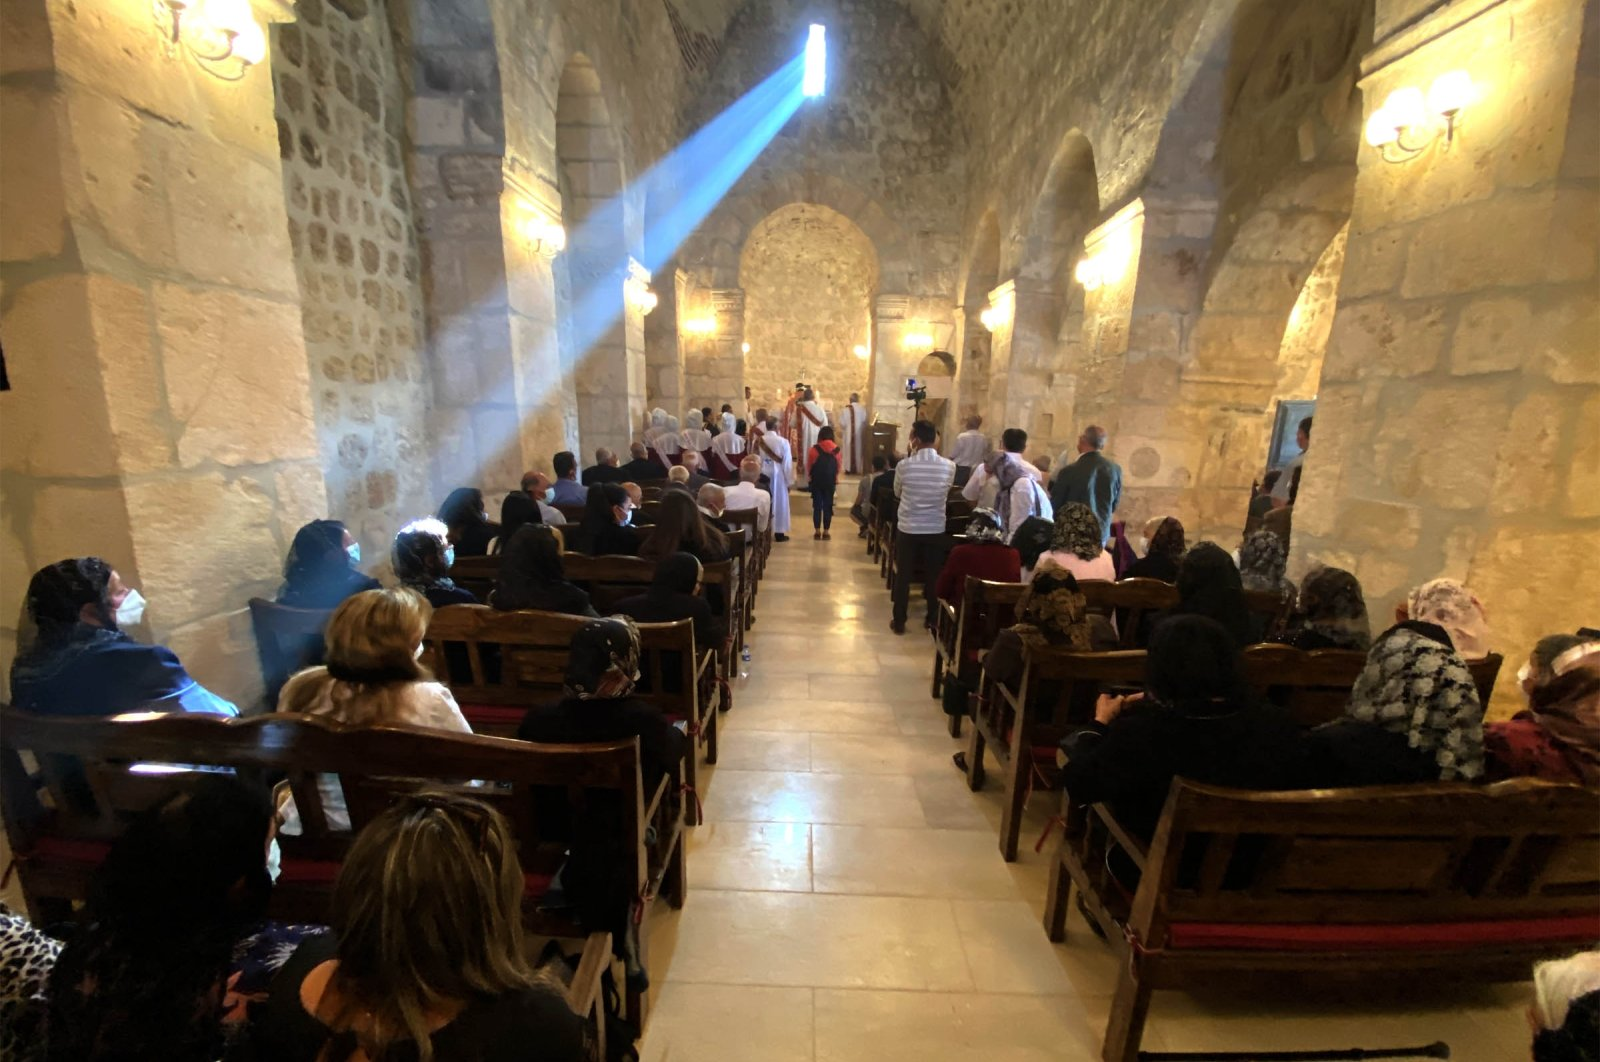 The opening ceremony of the 1,700-year-old Mor Dimet Church, Mardin, southeastern Turkey, Oct. 11, 2021. (DHA Photo)